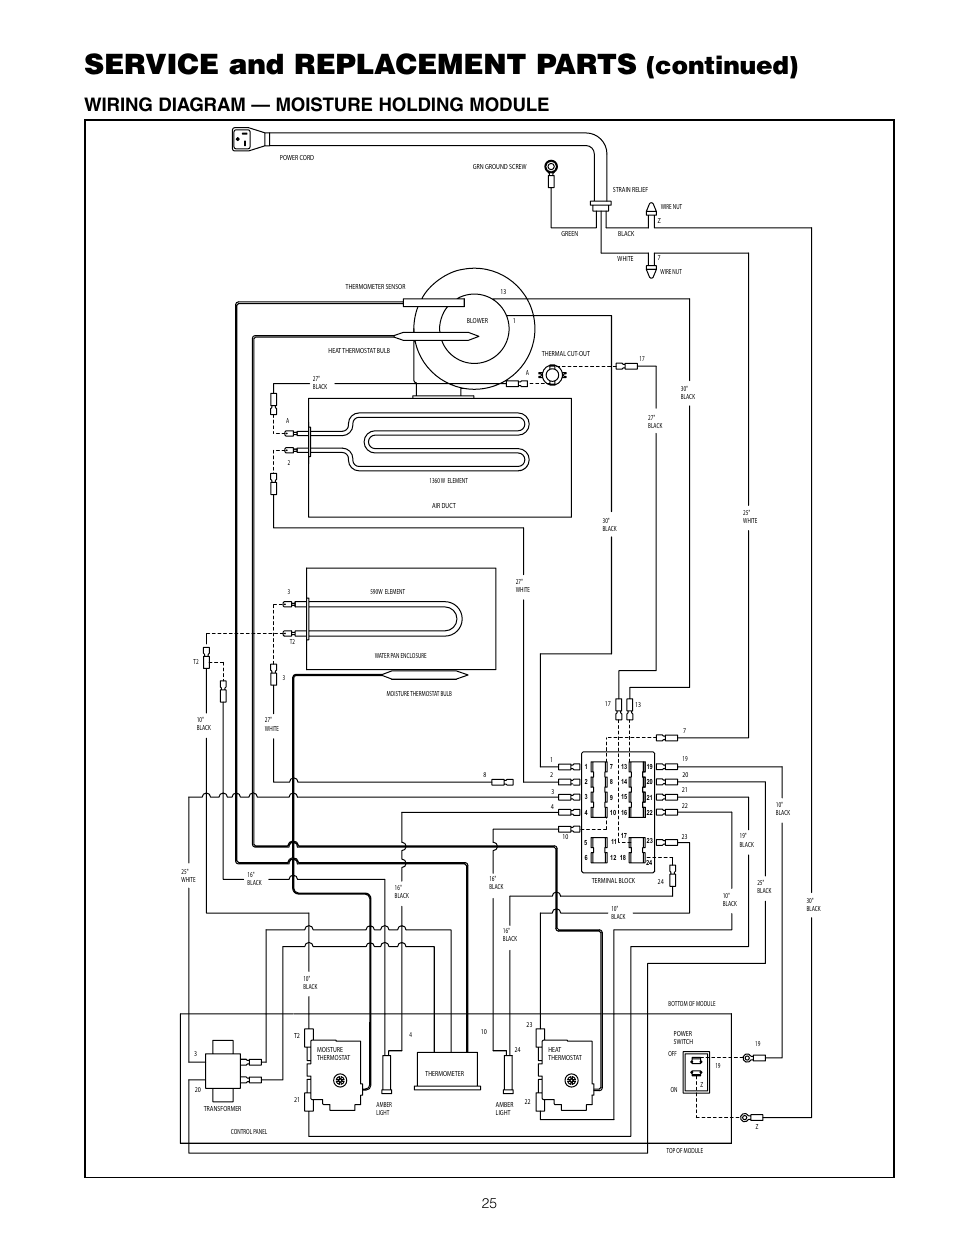 hight resolution of service and replacement parts continued wiring diagram moisture metro c5 wiring diagram for